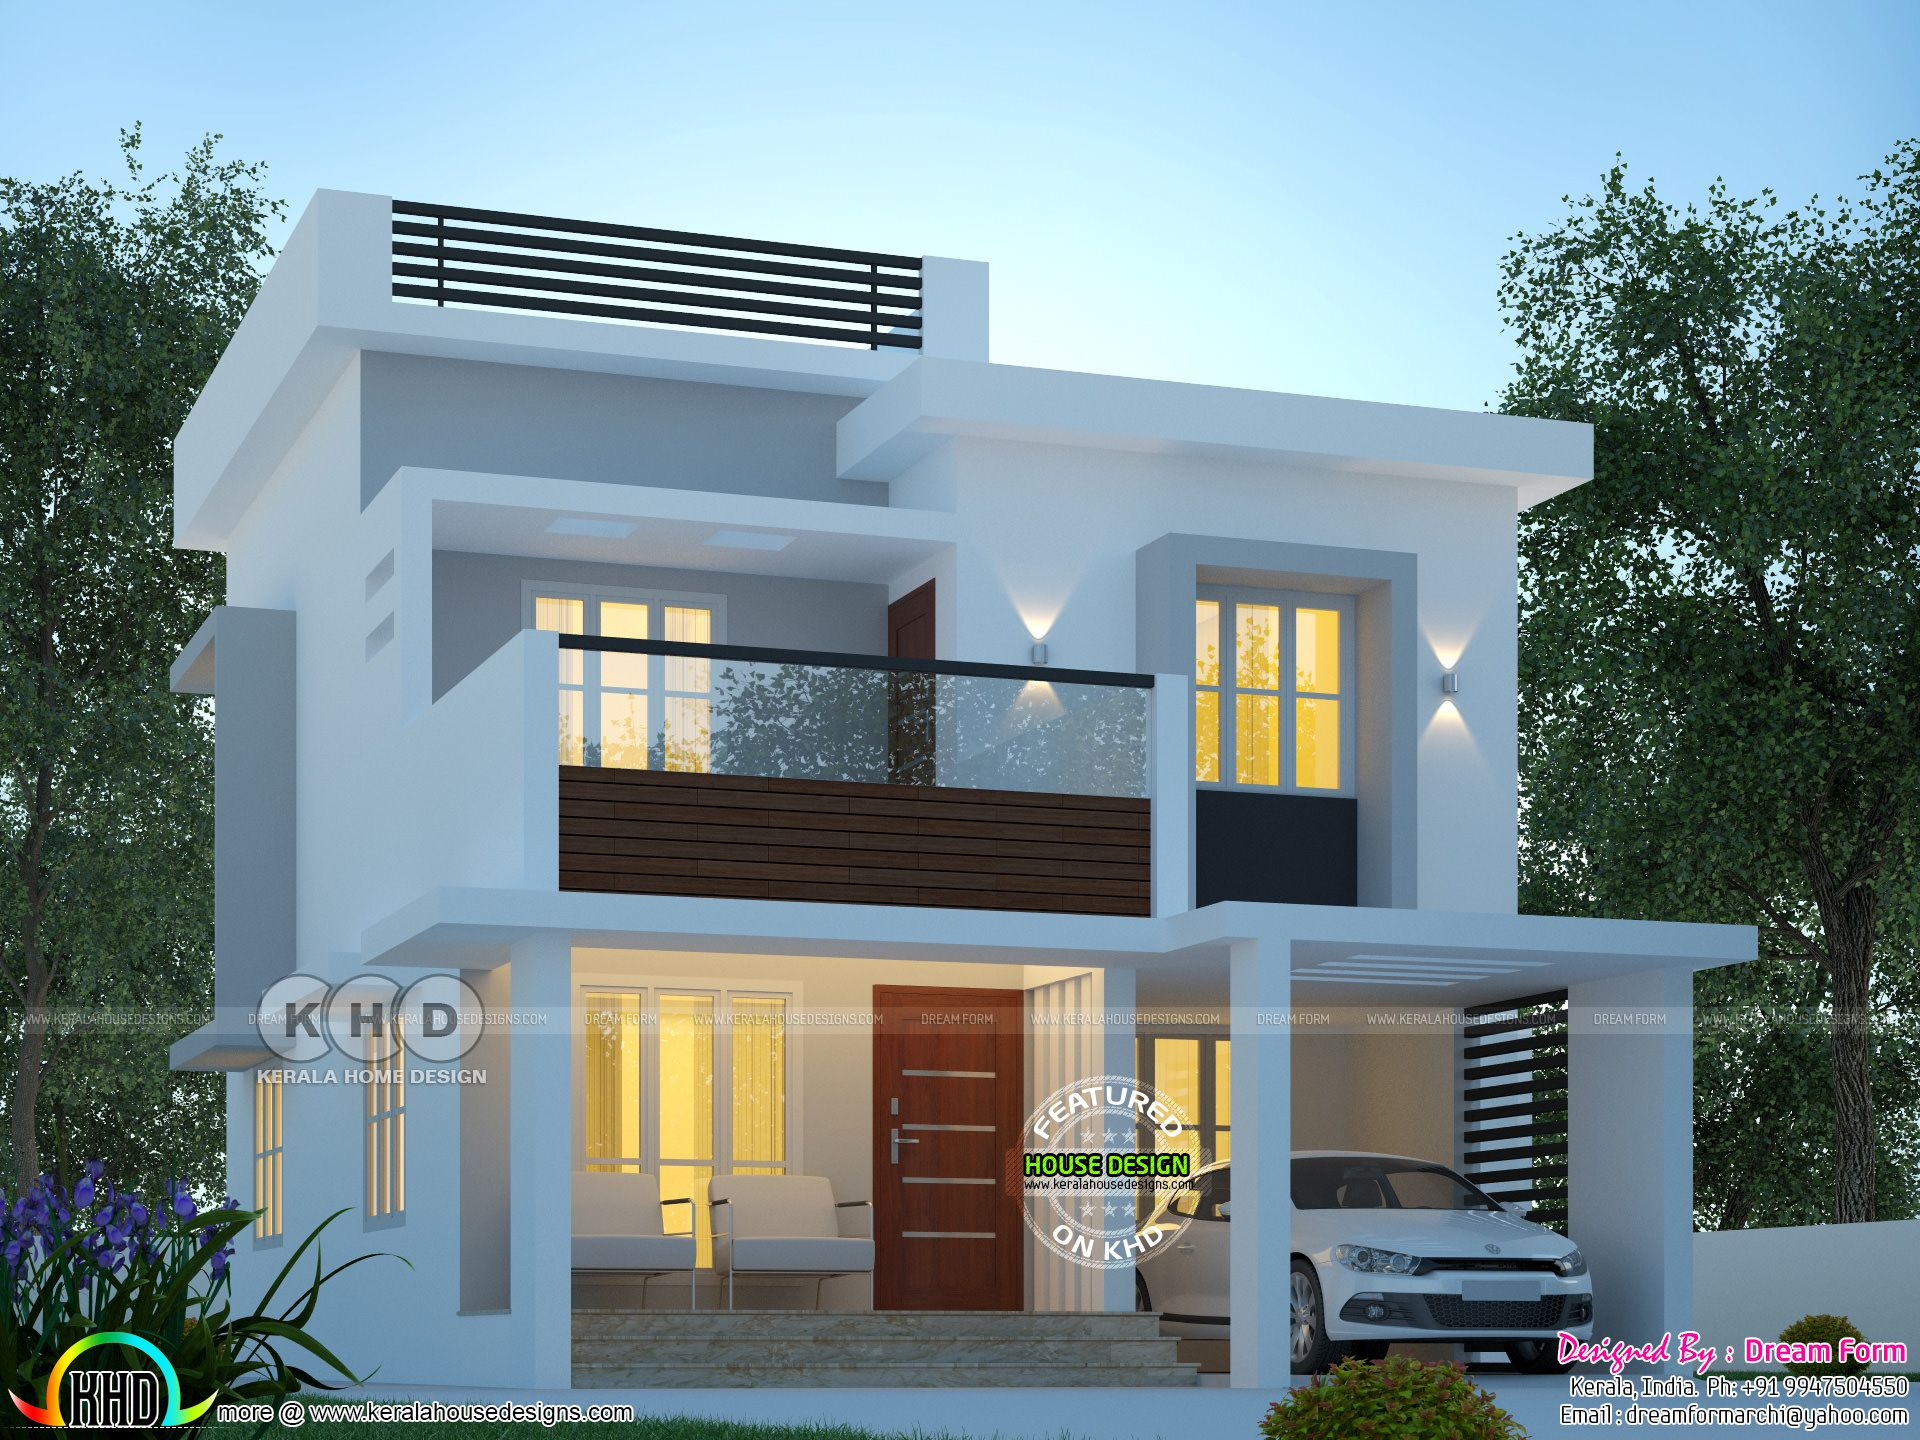 1600 Sq Ft Modern Home Plan With 3 Bedrooms Kerala House Design Bungalow House Design Duplex House Design